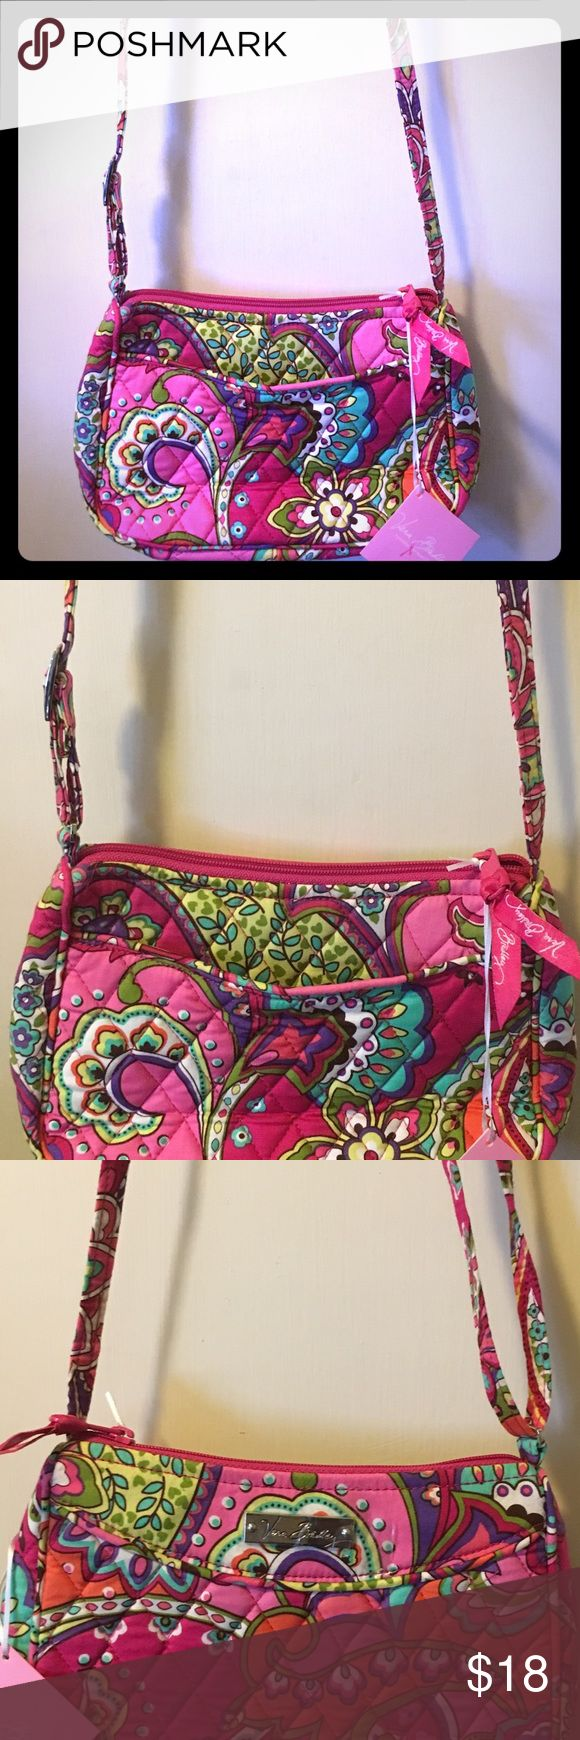 Vera Bradley Mini Crossover Bag This cute crossbody is sized just right for all the essentials. The back slip pocket is the ideal place for keys and a phone, while the zip-top closure keeps other everyday must-haves secure. Features a back slip pocket. Zip closure. Pet Free/Smoke Free Home Vera Bradley Bags Crossbody Bags